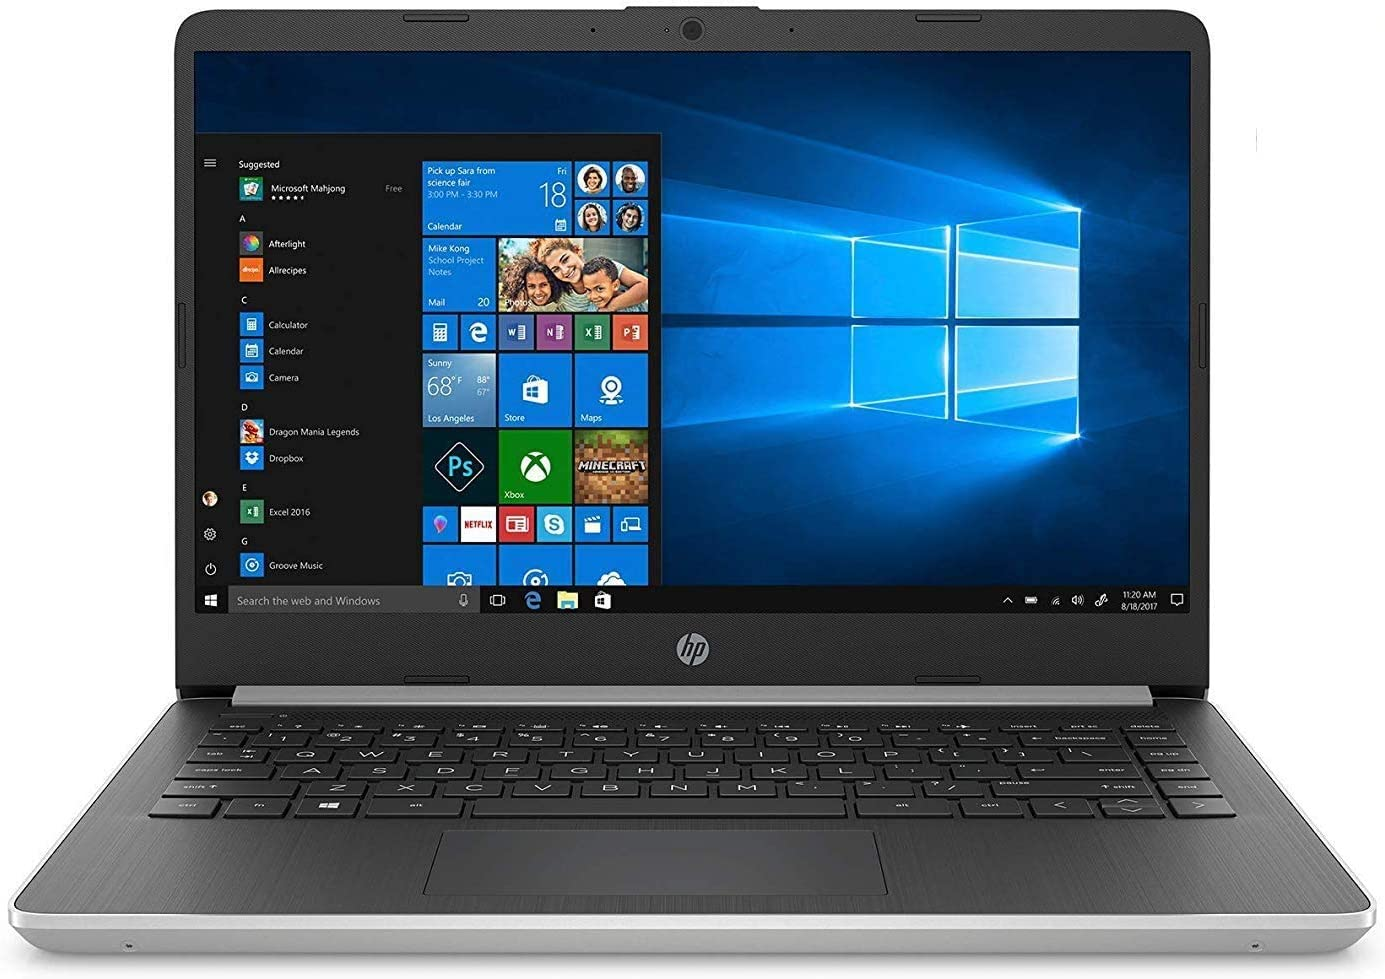 "New 2020 HP 15.6"" HD Touchscreen Laptop Intel Core i7-1065G7 8GB DDR4 RAM 512GB SSD HDMI 802.11b/g/n/ac Windows 10 Silver 15-dy1771ms"